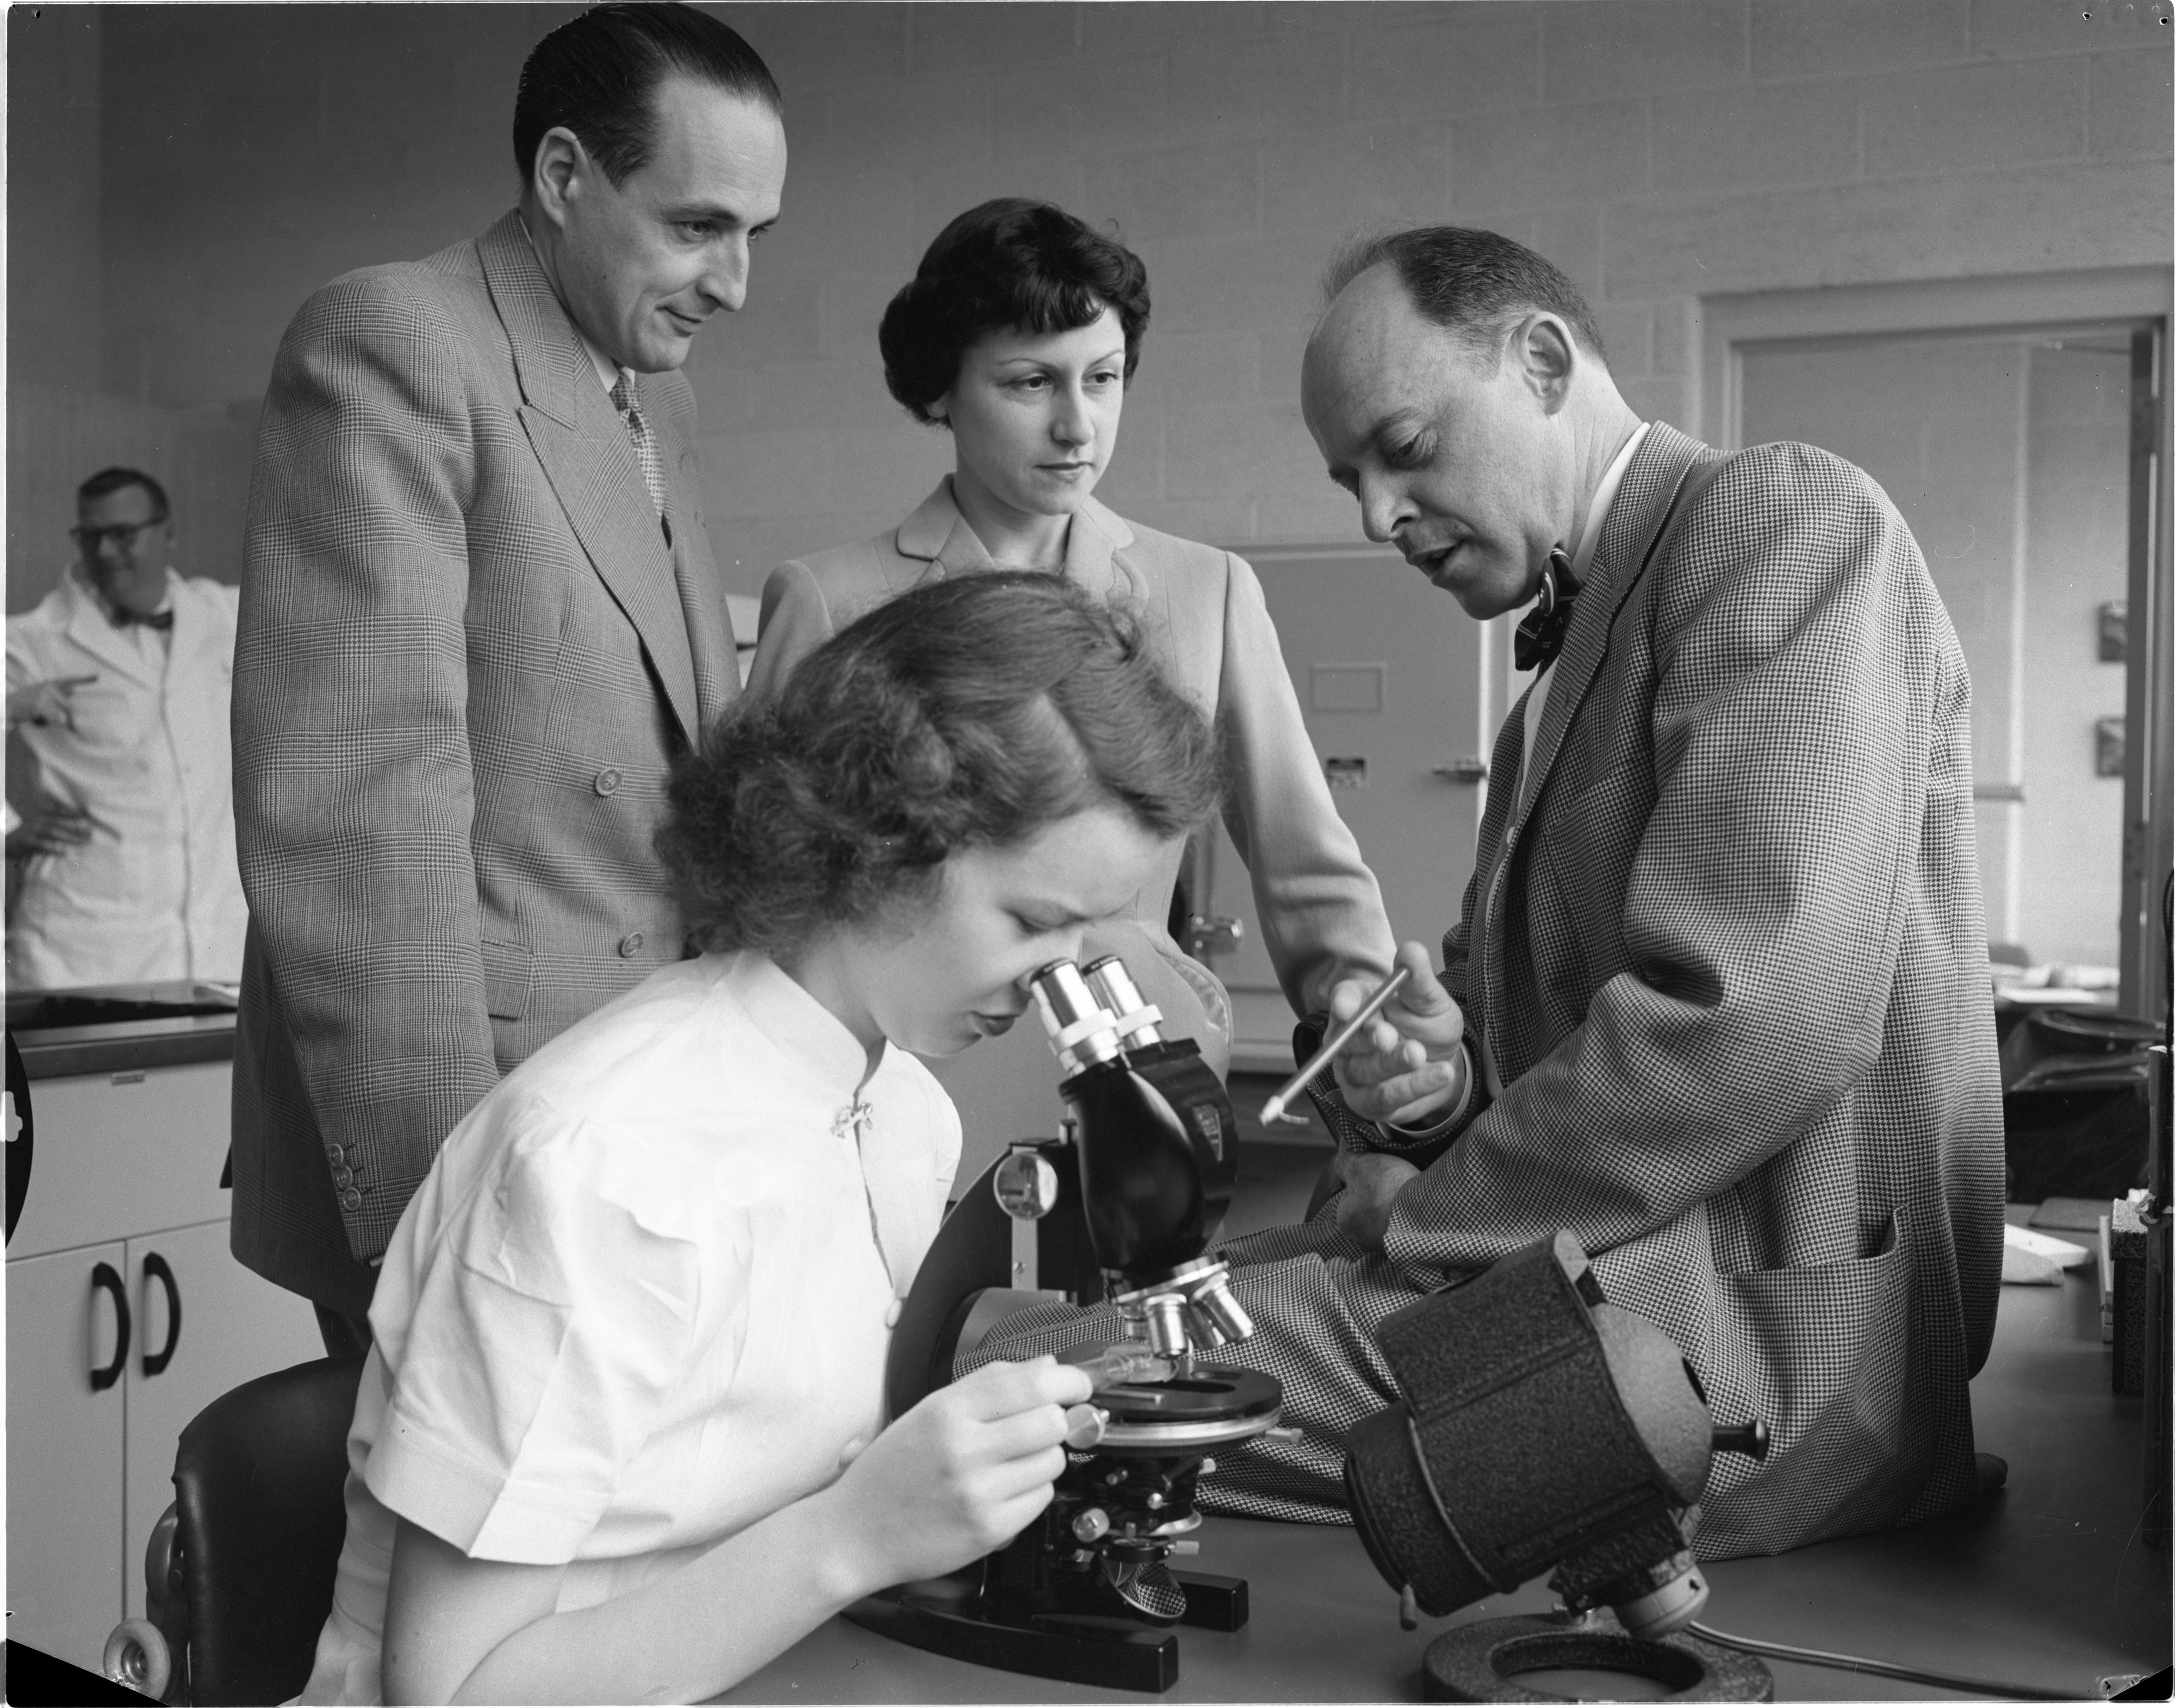 Dr. Francois Emile-Zola & Wife Visit The University Of Michigan's Institute of Industrial Health, April 1954 image